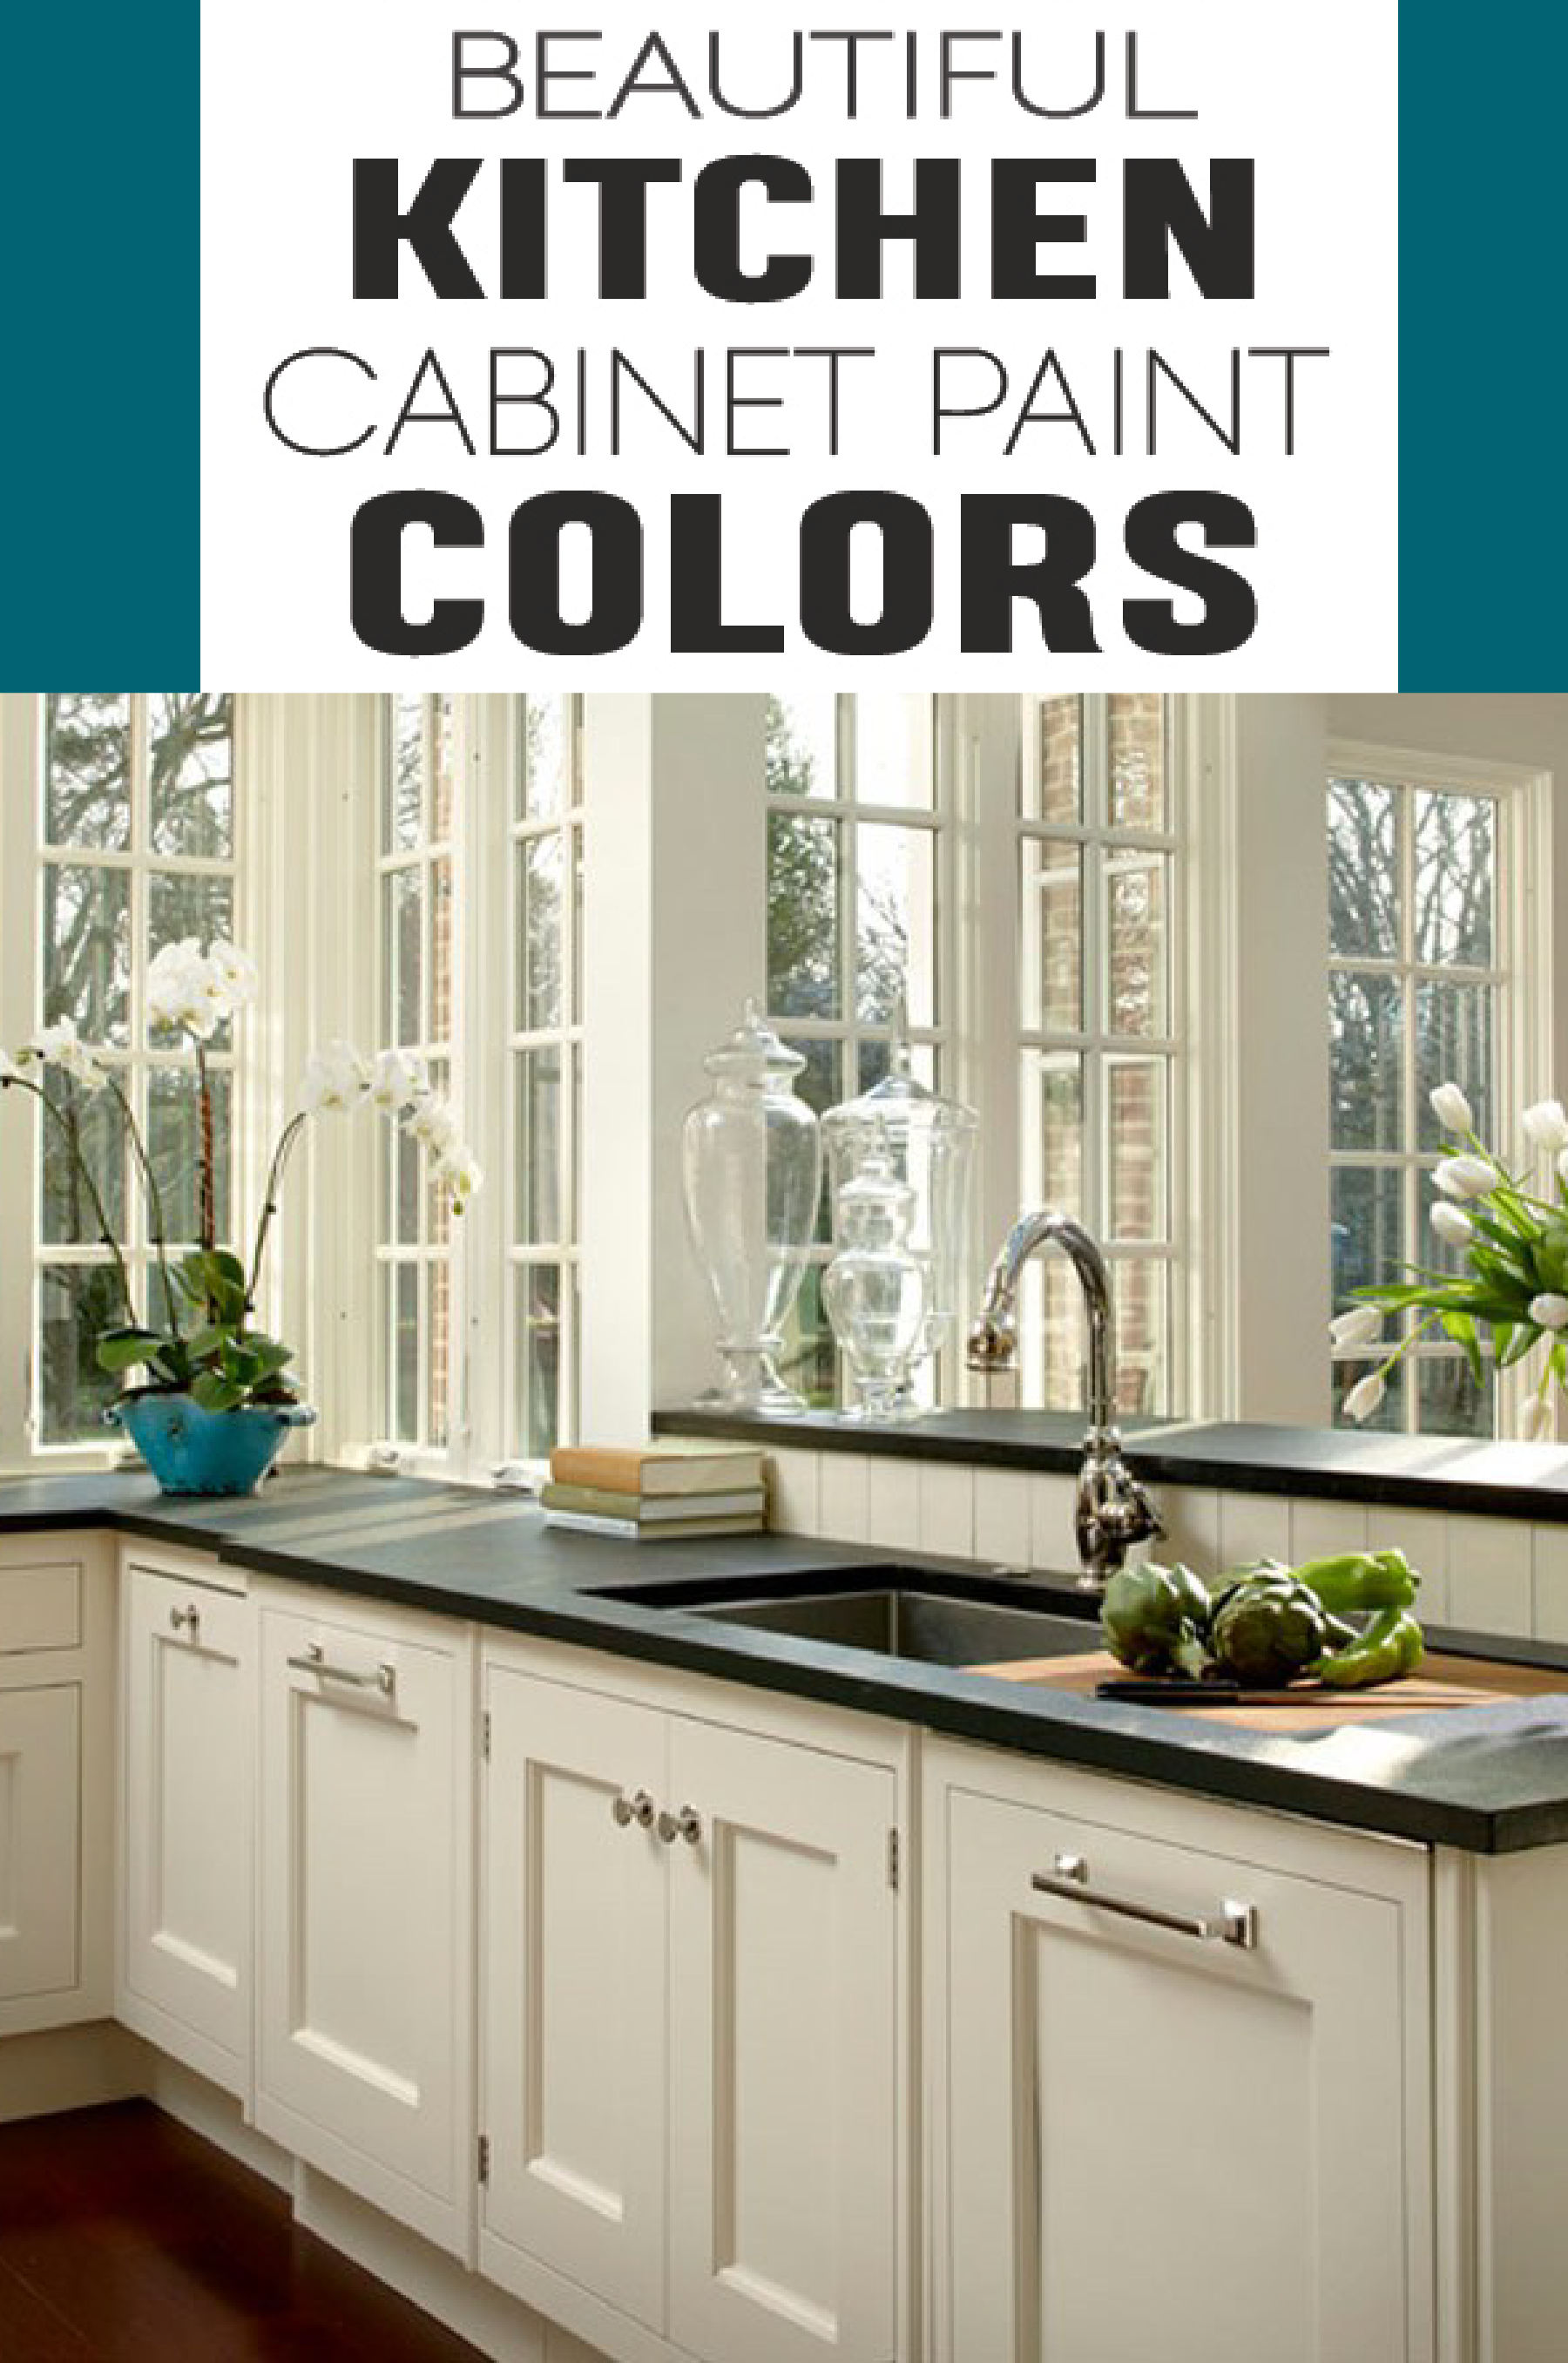 how to pick paint colors for kitchen cabinets kitchen cabinet color schemes kitchen cabinets on kitchen paint colors id=31347